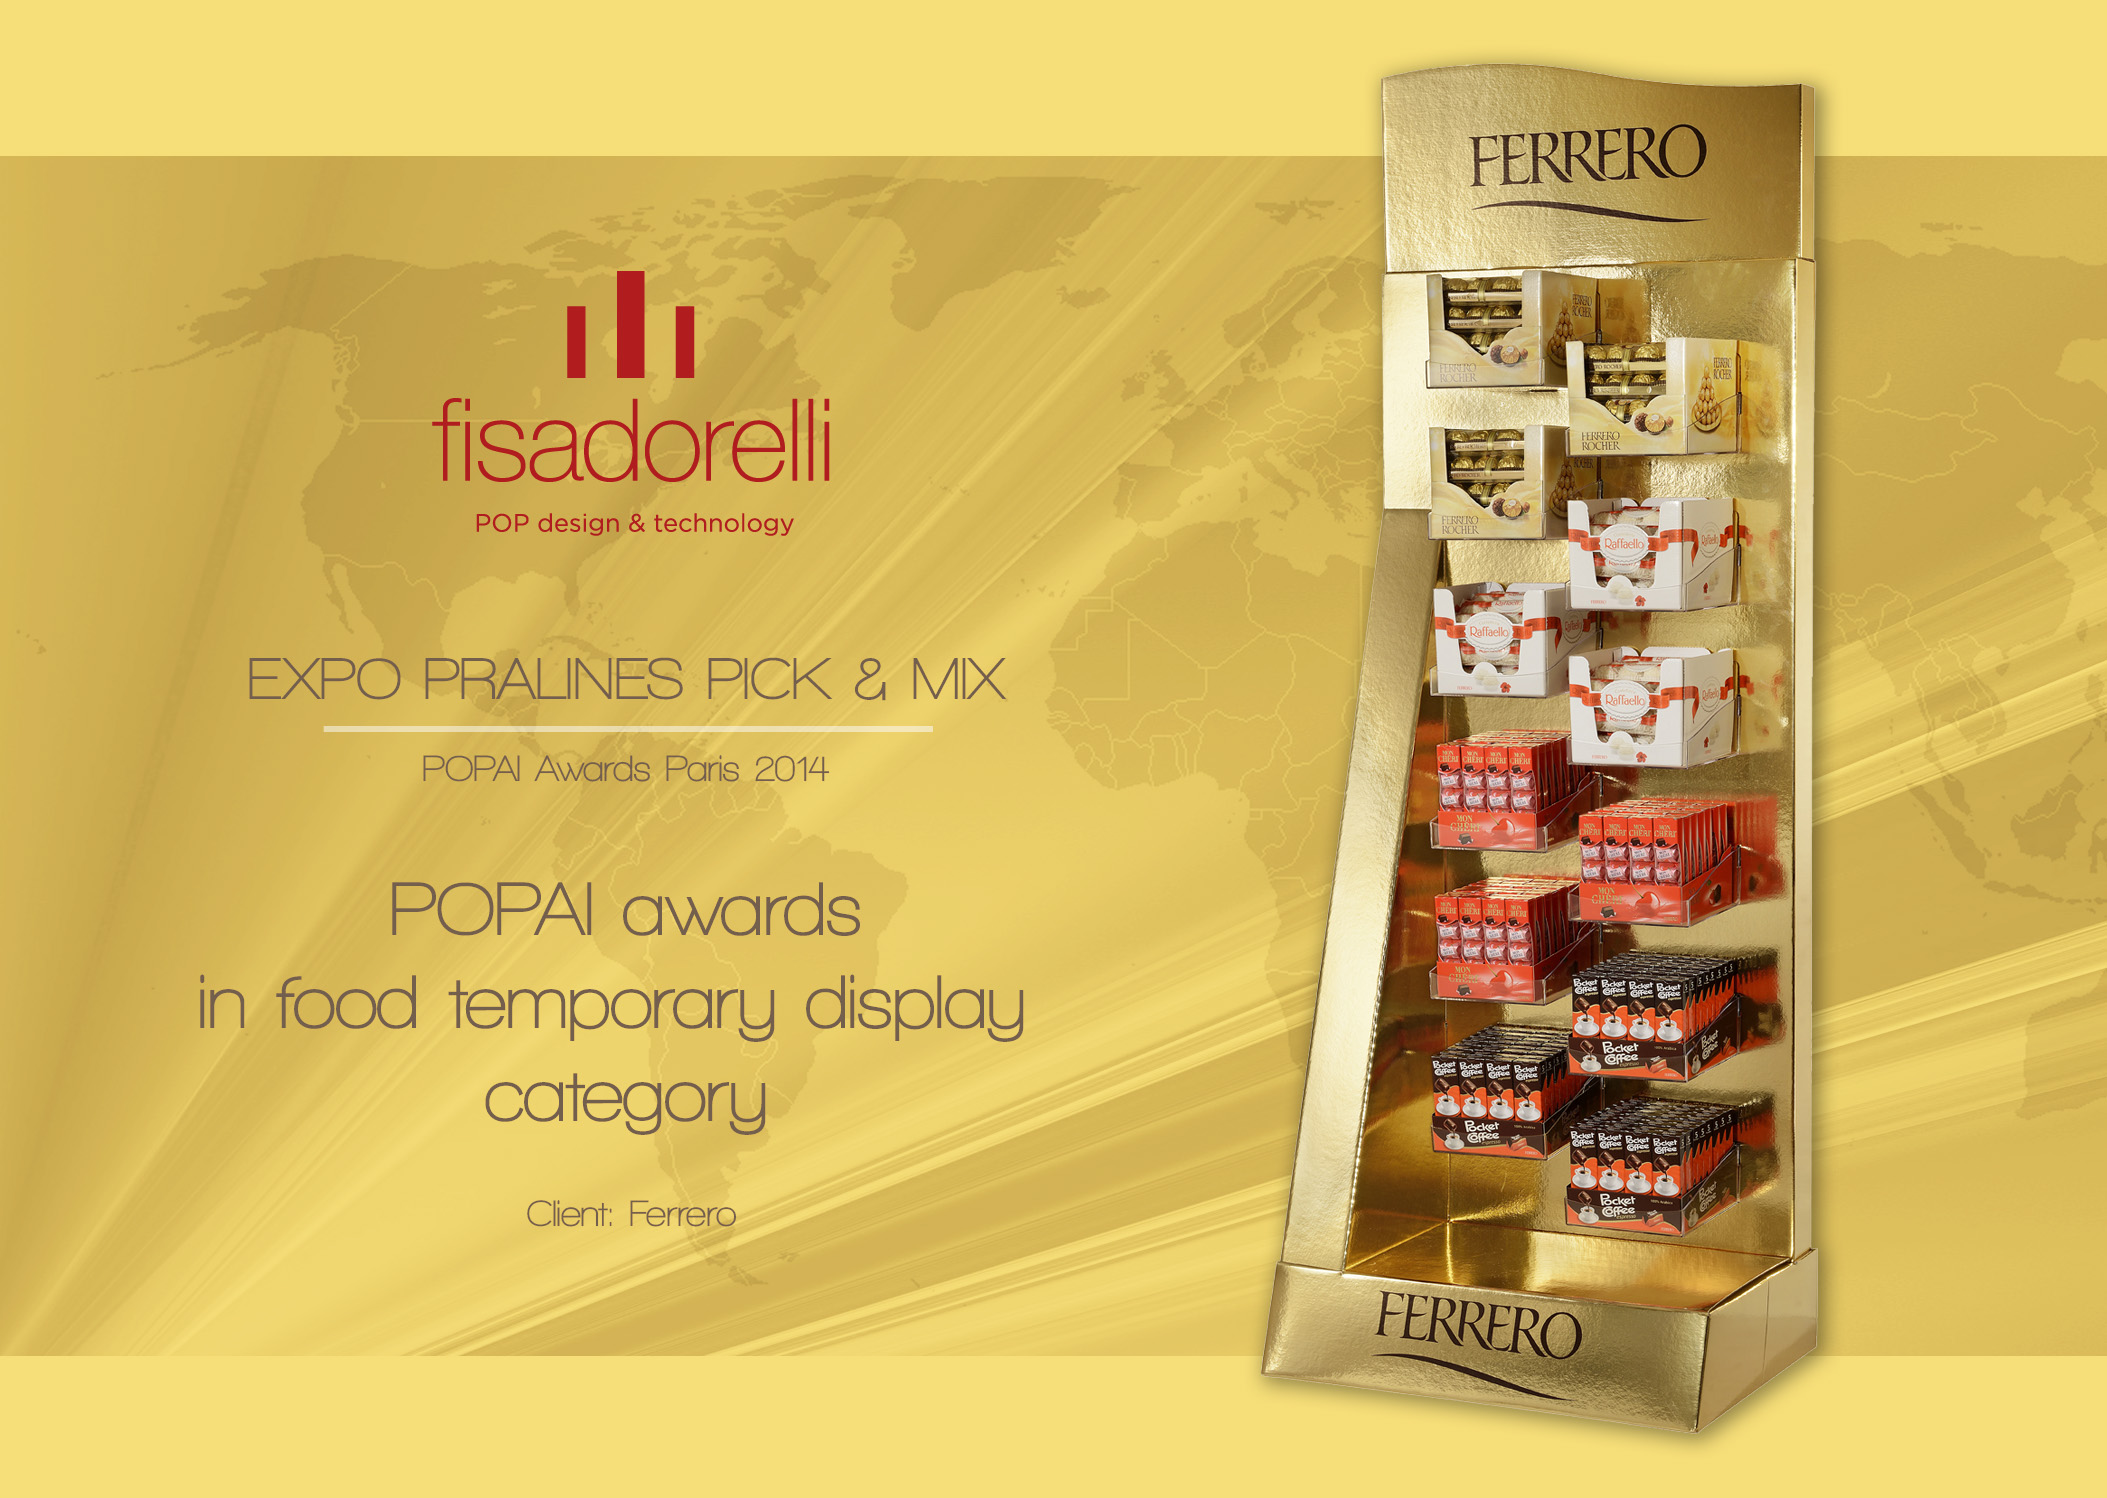 Expo Pralines Pick and Mix